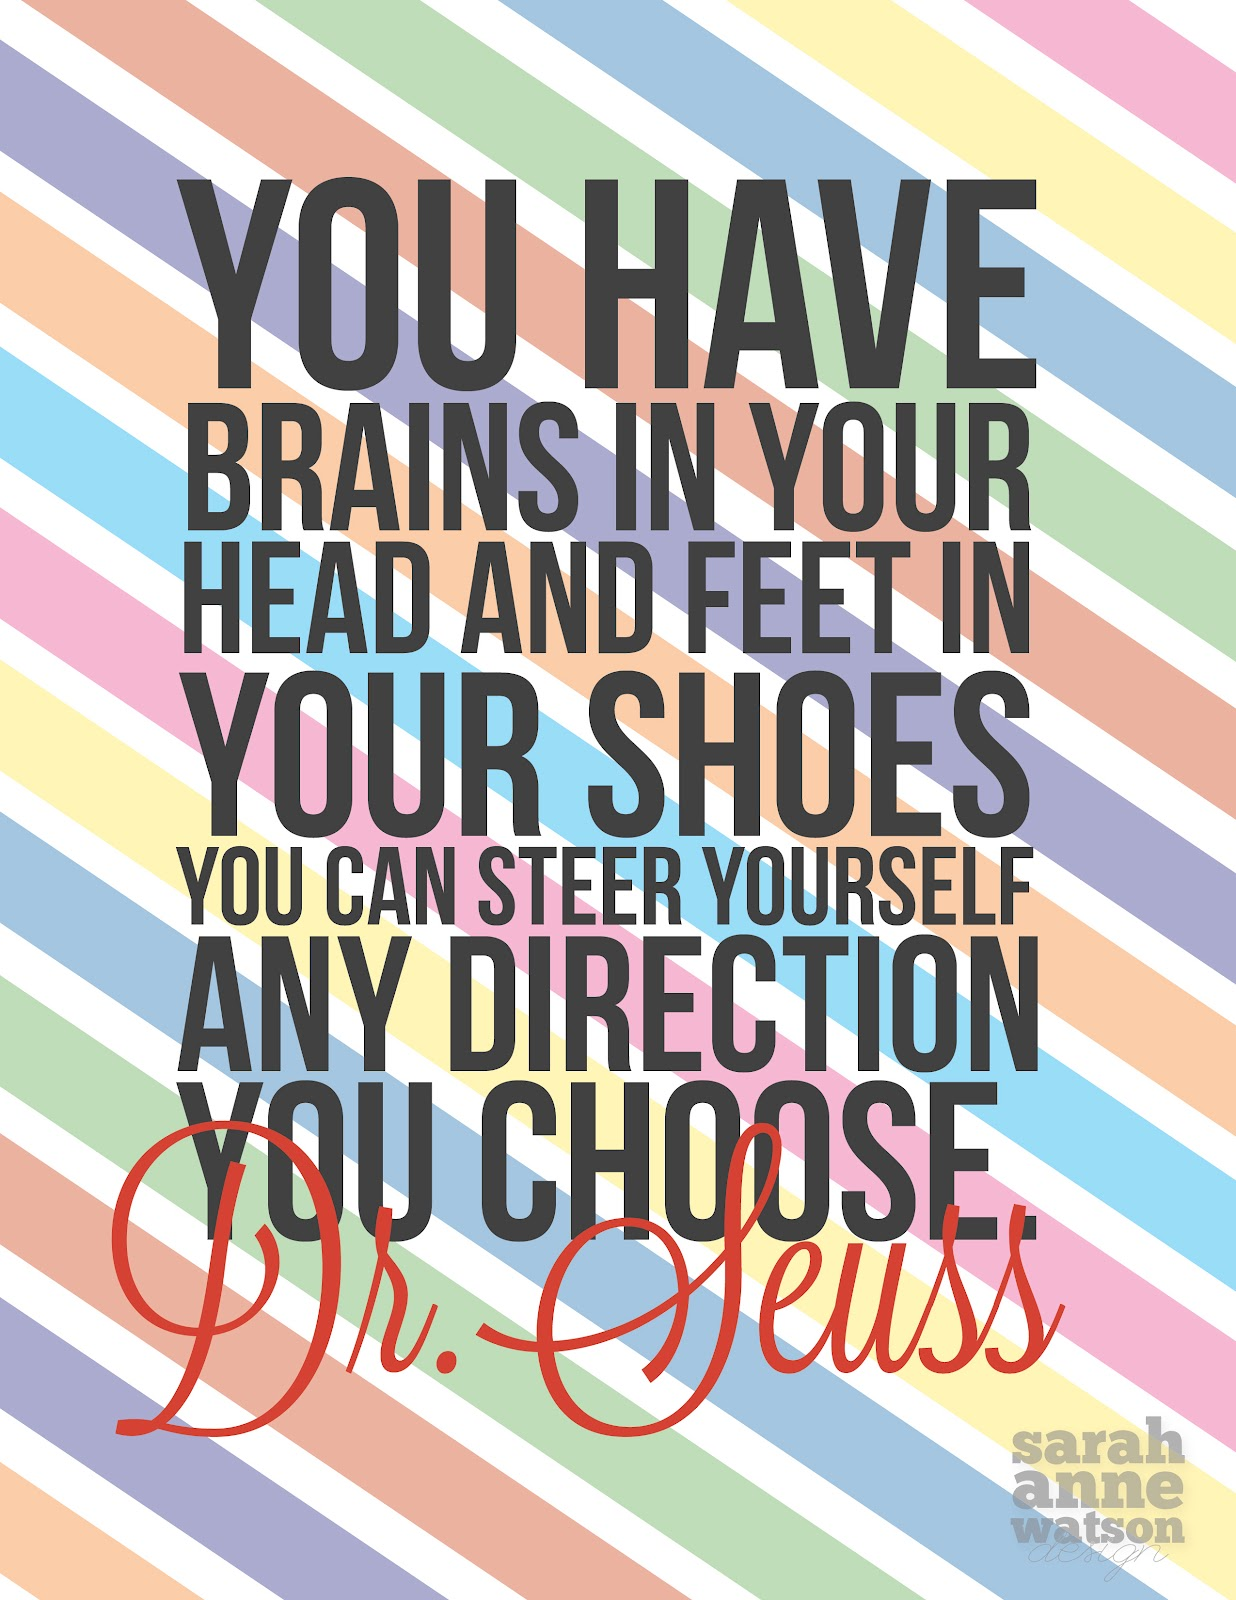 We Have Brains In Our Head Feet In Our Shoes 91